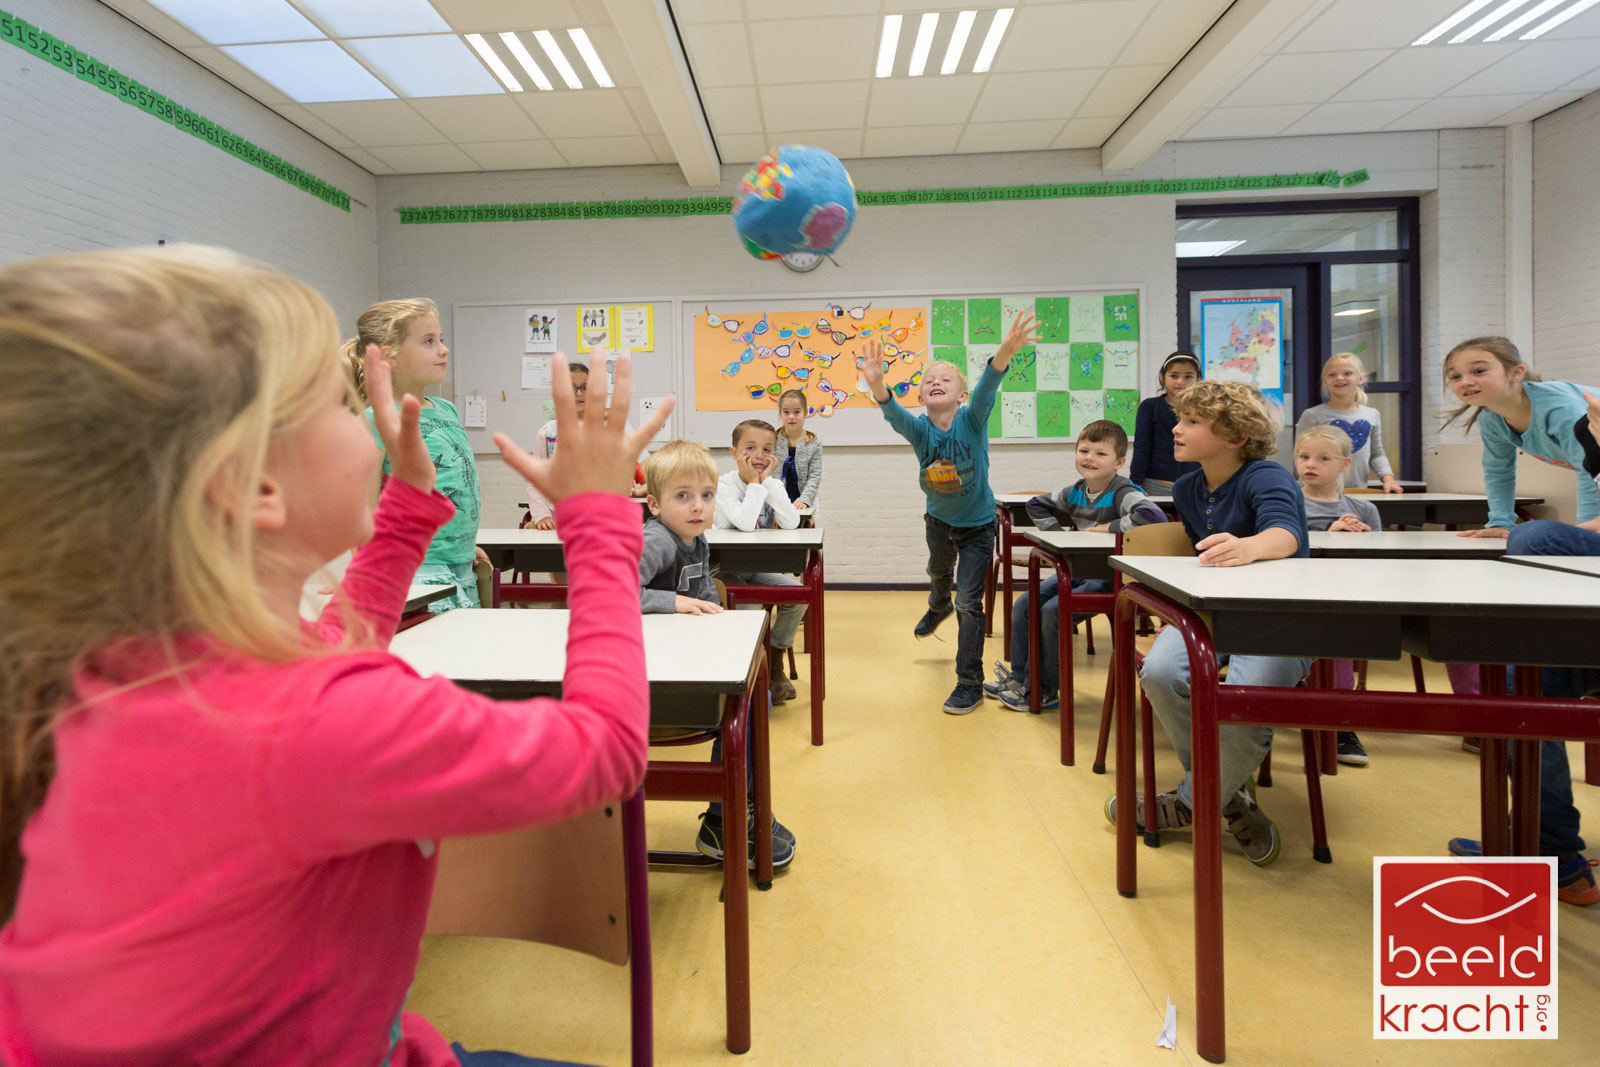 Children in a classroom throwing a worldball to each other.